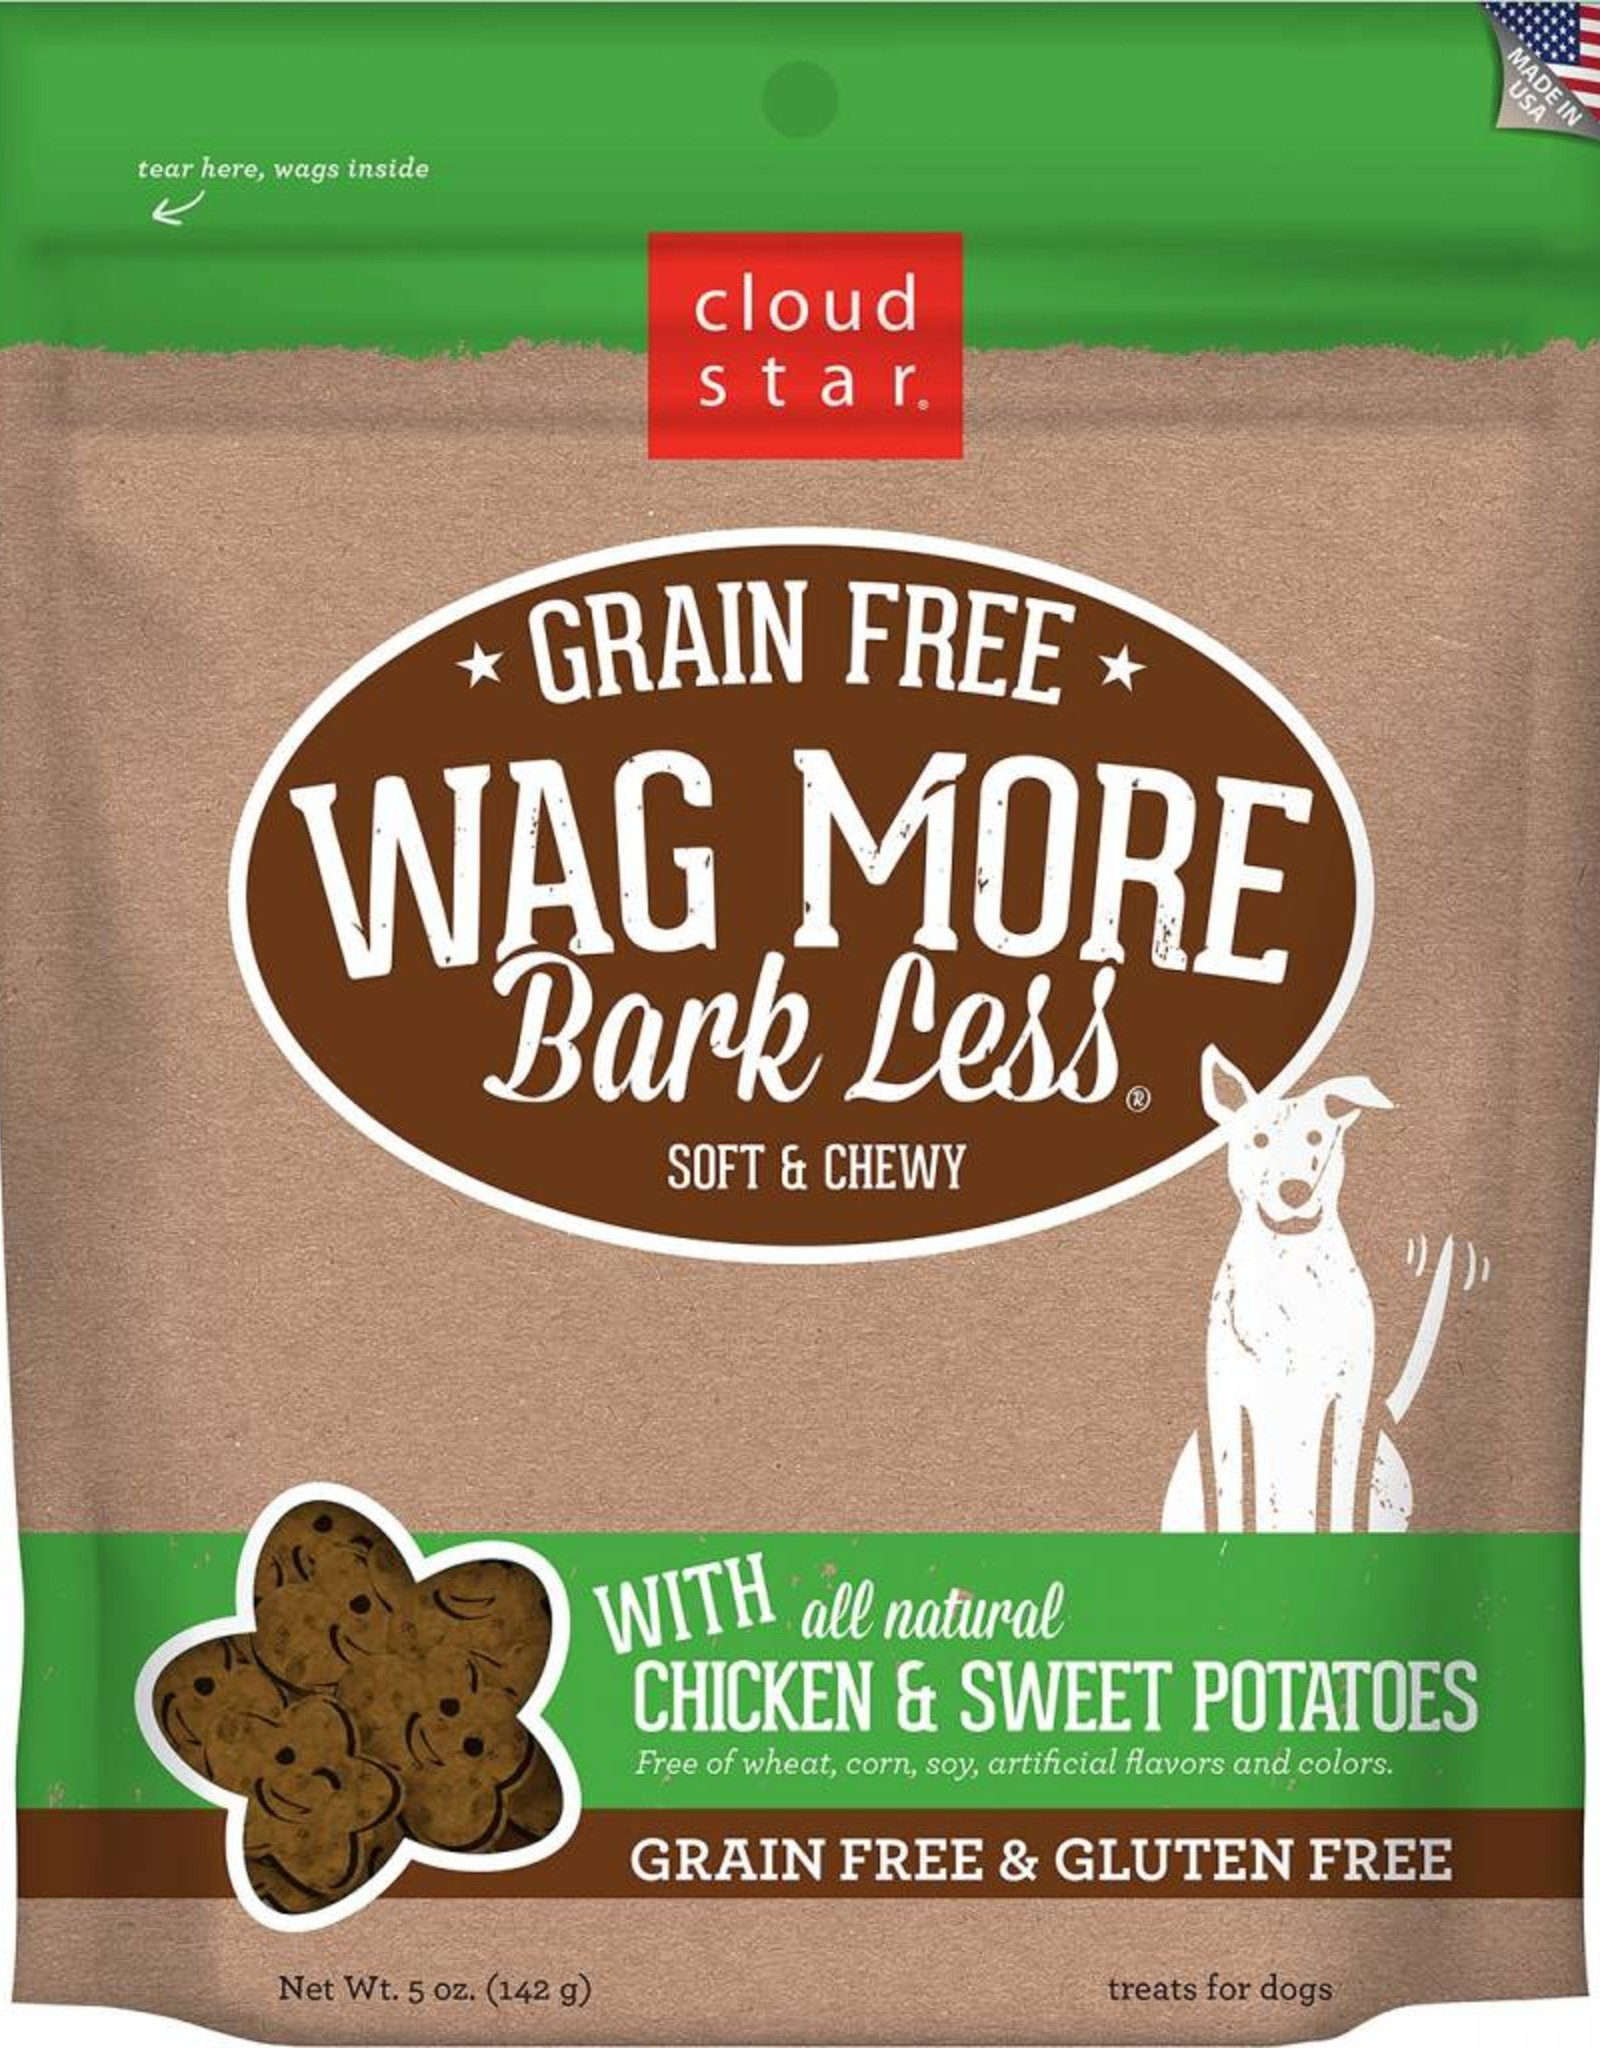 Cloud Star Wag More Bark Less Grain-Free Soft & Chewy with Chicken & Sweet Potatoes Dog Treats, 5 oz.